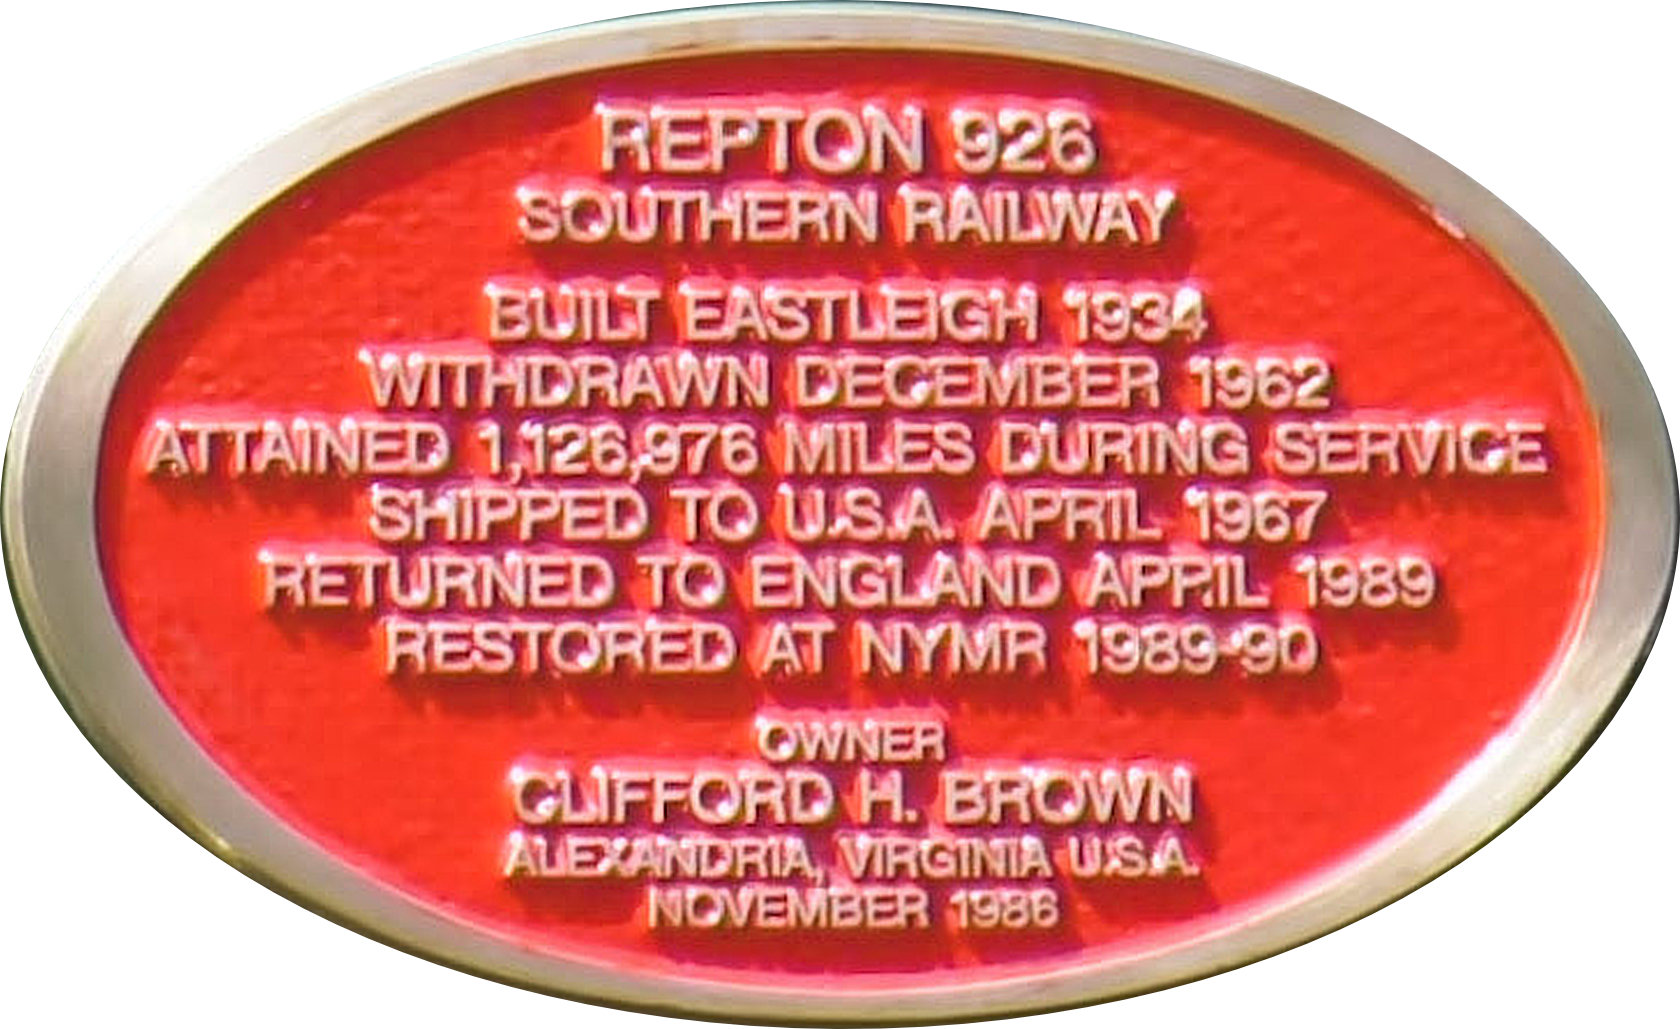 Repton's information plate